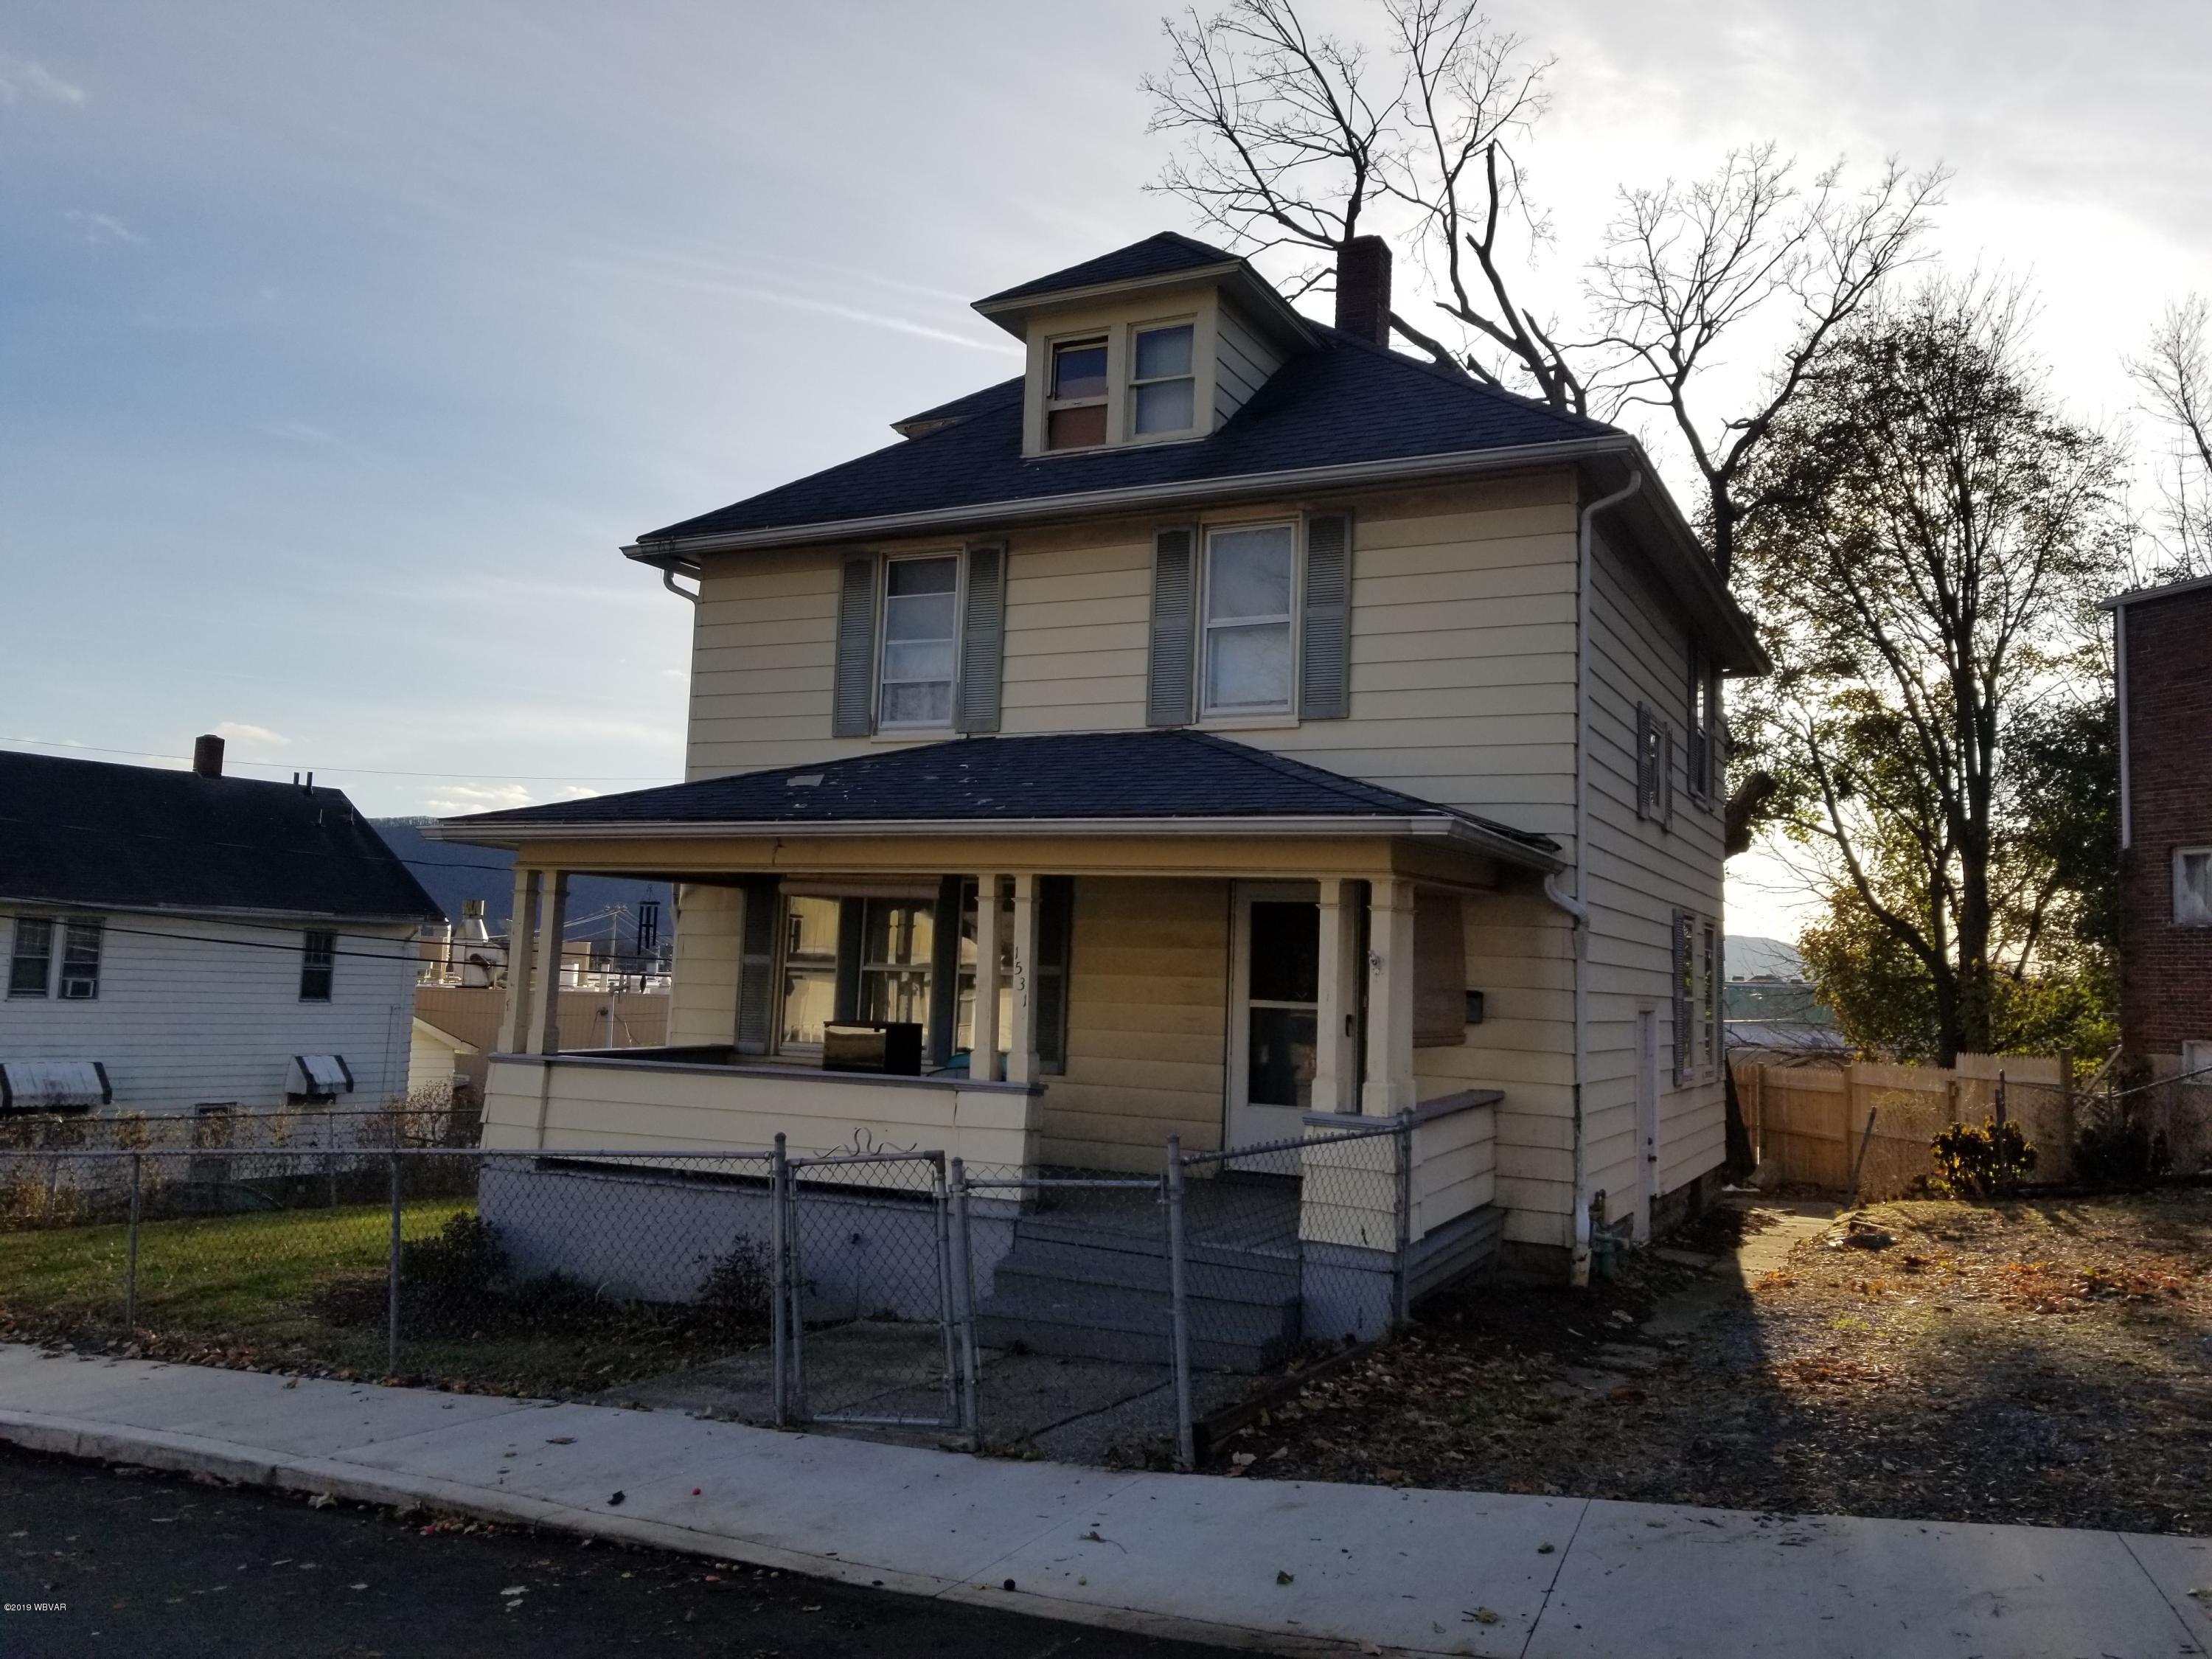 1531 PARK AVENUE, Williamsport, PA 17701, 3 Bedrooms Bedrooms, ,1 BathroomBathrooms,Residential,For sale,PARK,WB-89103